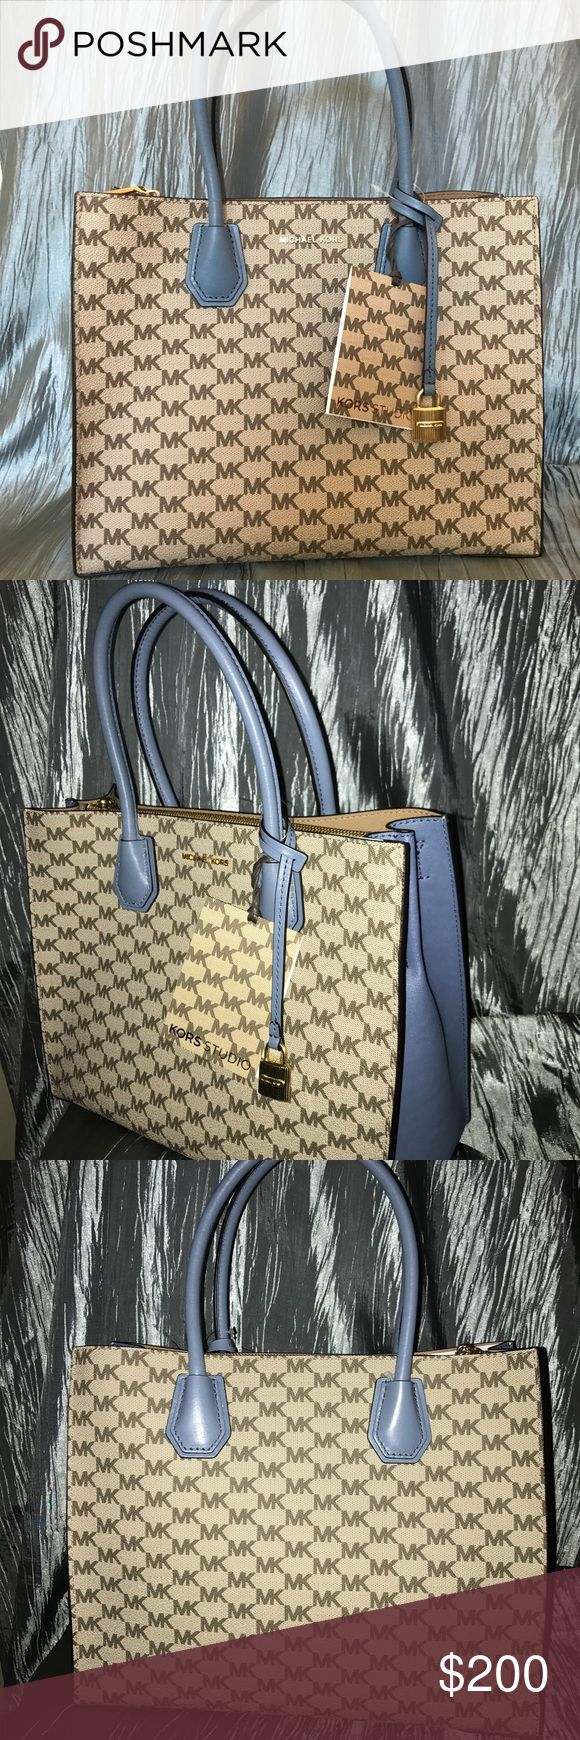 """Michael Kors Studio Natural Denim Mercer Tote -New with tags: A brand-new, unused, and unworn item. Never used, in perfect condition, no defects, marks, or scratches.  -UPC # 190864481548 Style # 30F6AM9T3V  -100% Authentic!  -Premium coated canvas emblazoned with signature logo. MK sturdy convertible tote comes with crossbody strap.  -MK dust cover included. -Interior center divider pocket with hang charm in front.  -Size: 11-1/4""""W x 8-1/2""""H x 5""""D; 4-1/4""""L double handles; 22""""-25""""L…"""